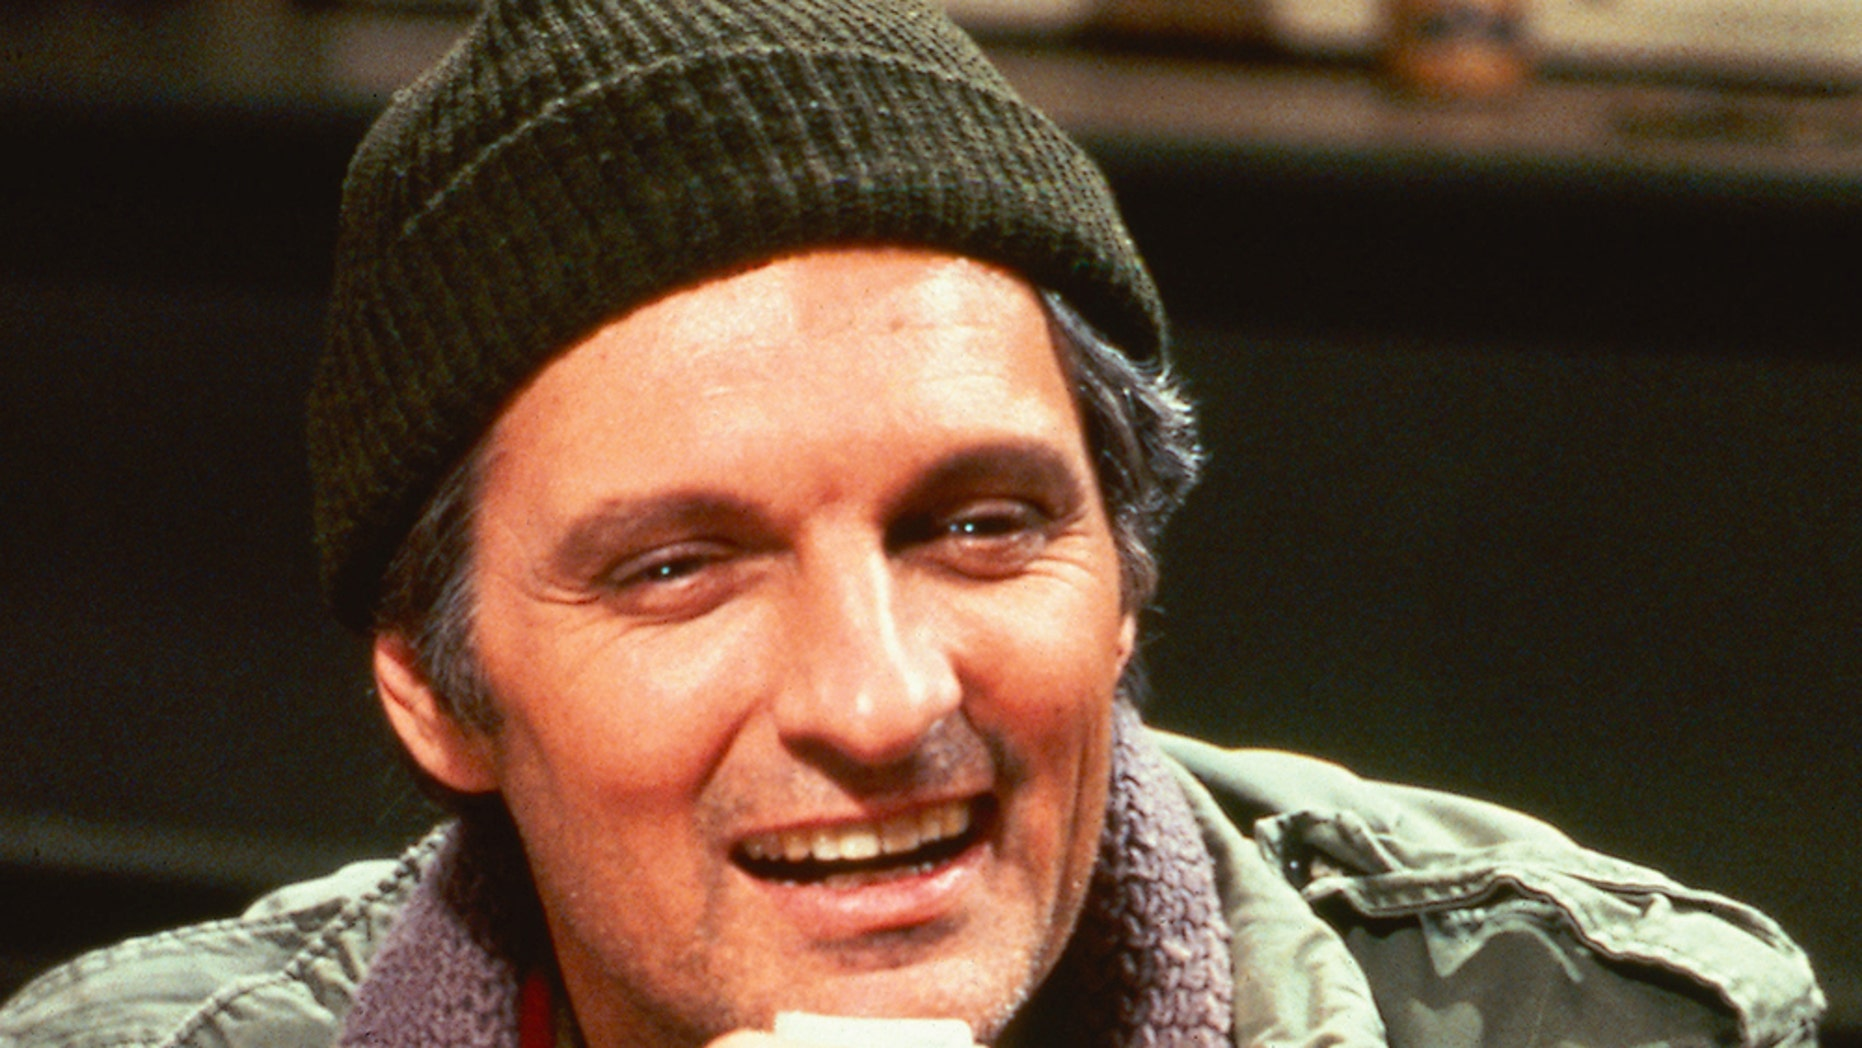 """Alan Alda in a promotional portrait for the television series """"M*A*S*H,"""" where he played Captain Benjamin Franklin 'Hawkeye' Pierce, circa 1972. — Getty"""